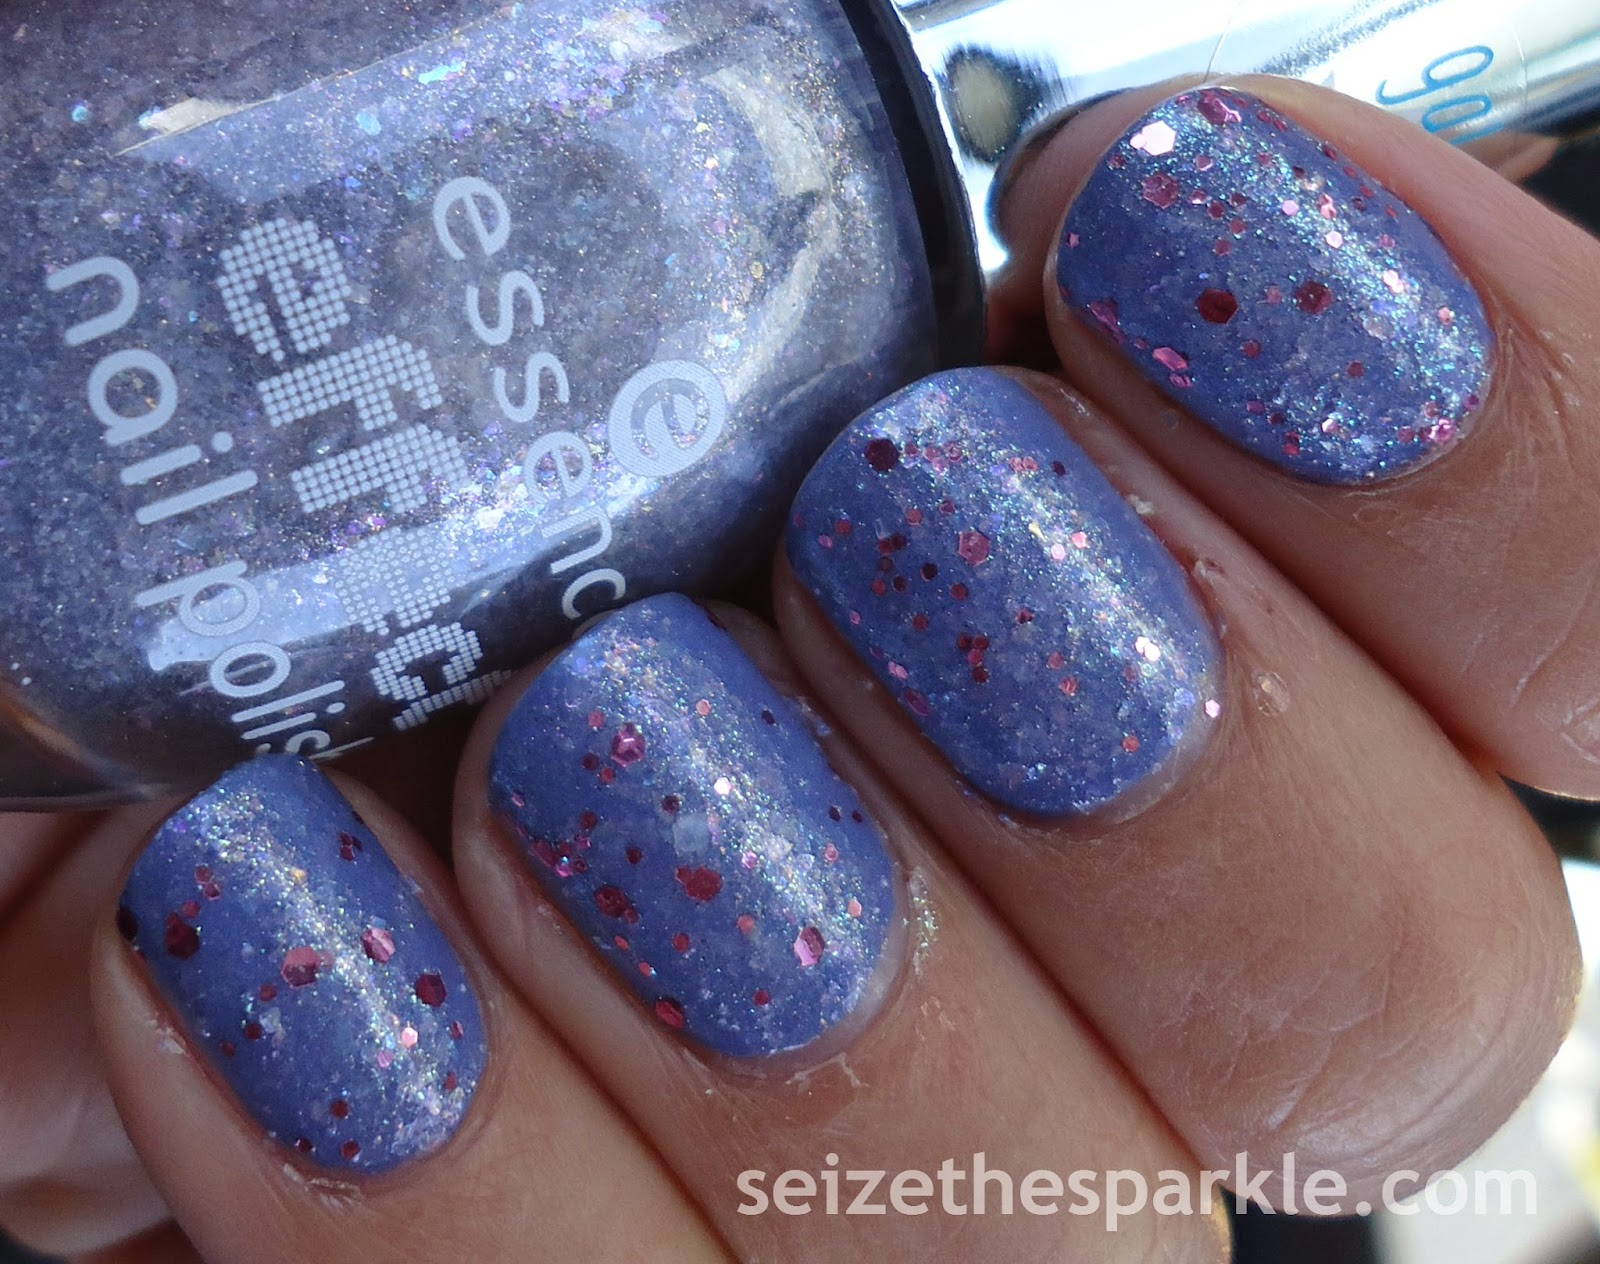 Essence Glitz & Glam and Rock My World over SinfulColors Lavender